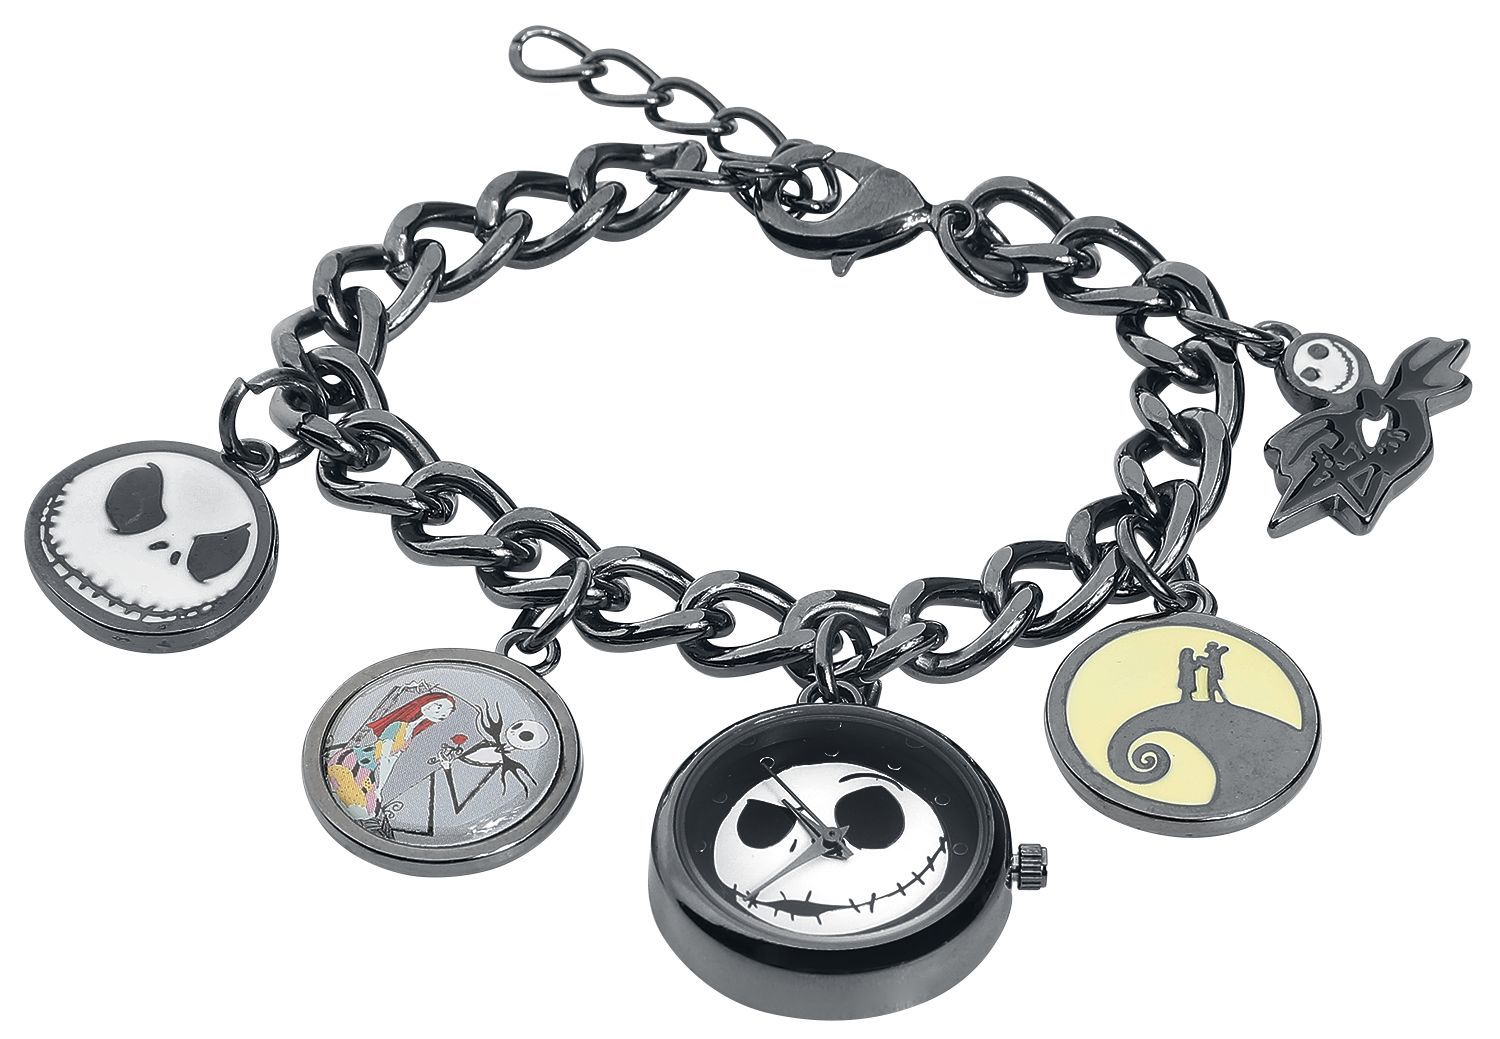 The Nightmare Before Christmas Watch Charm Bracelet Men S At Mighty Ape Nz